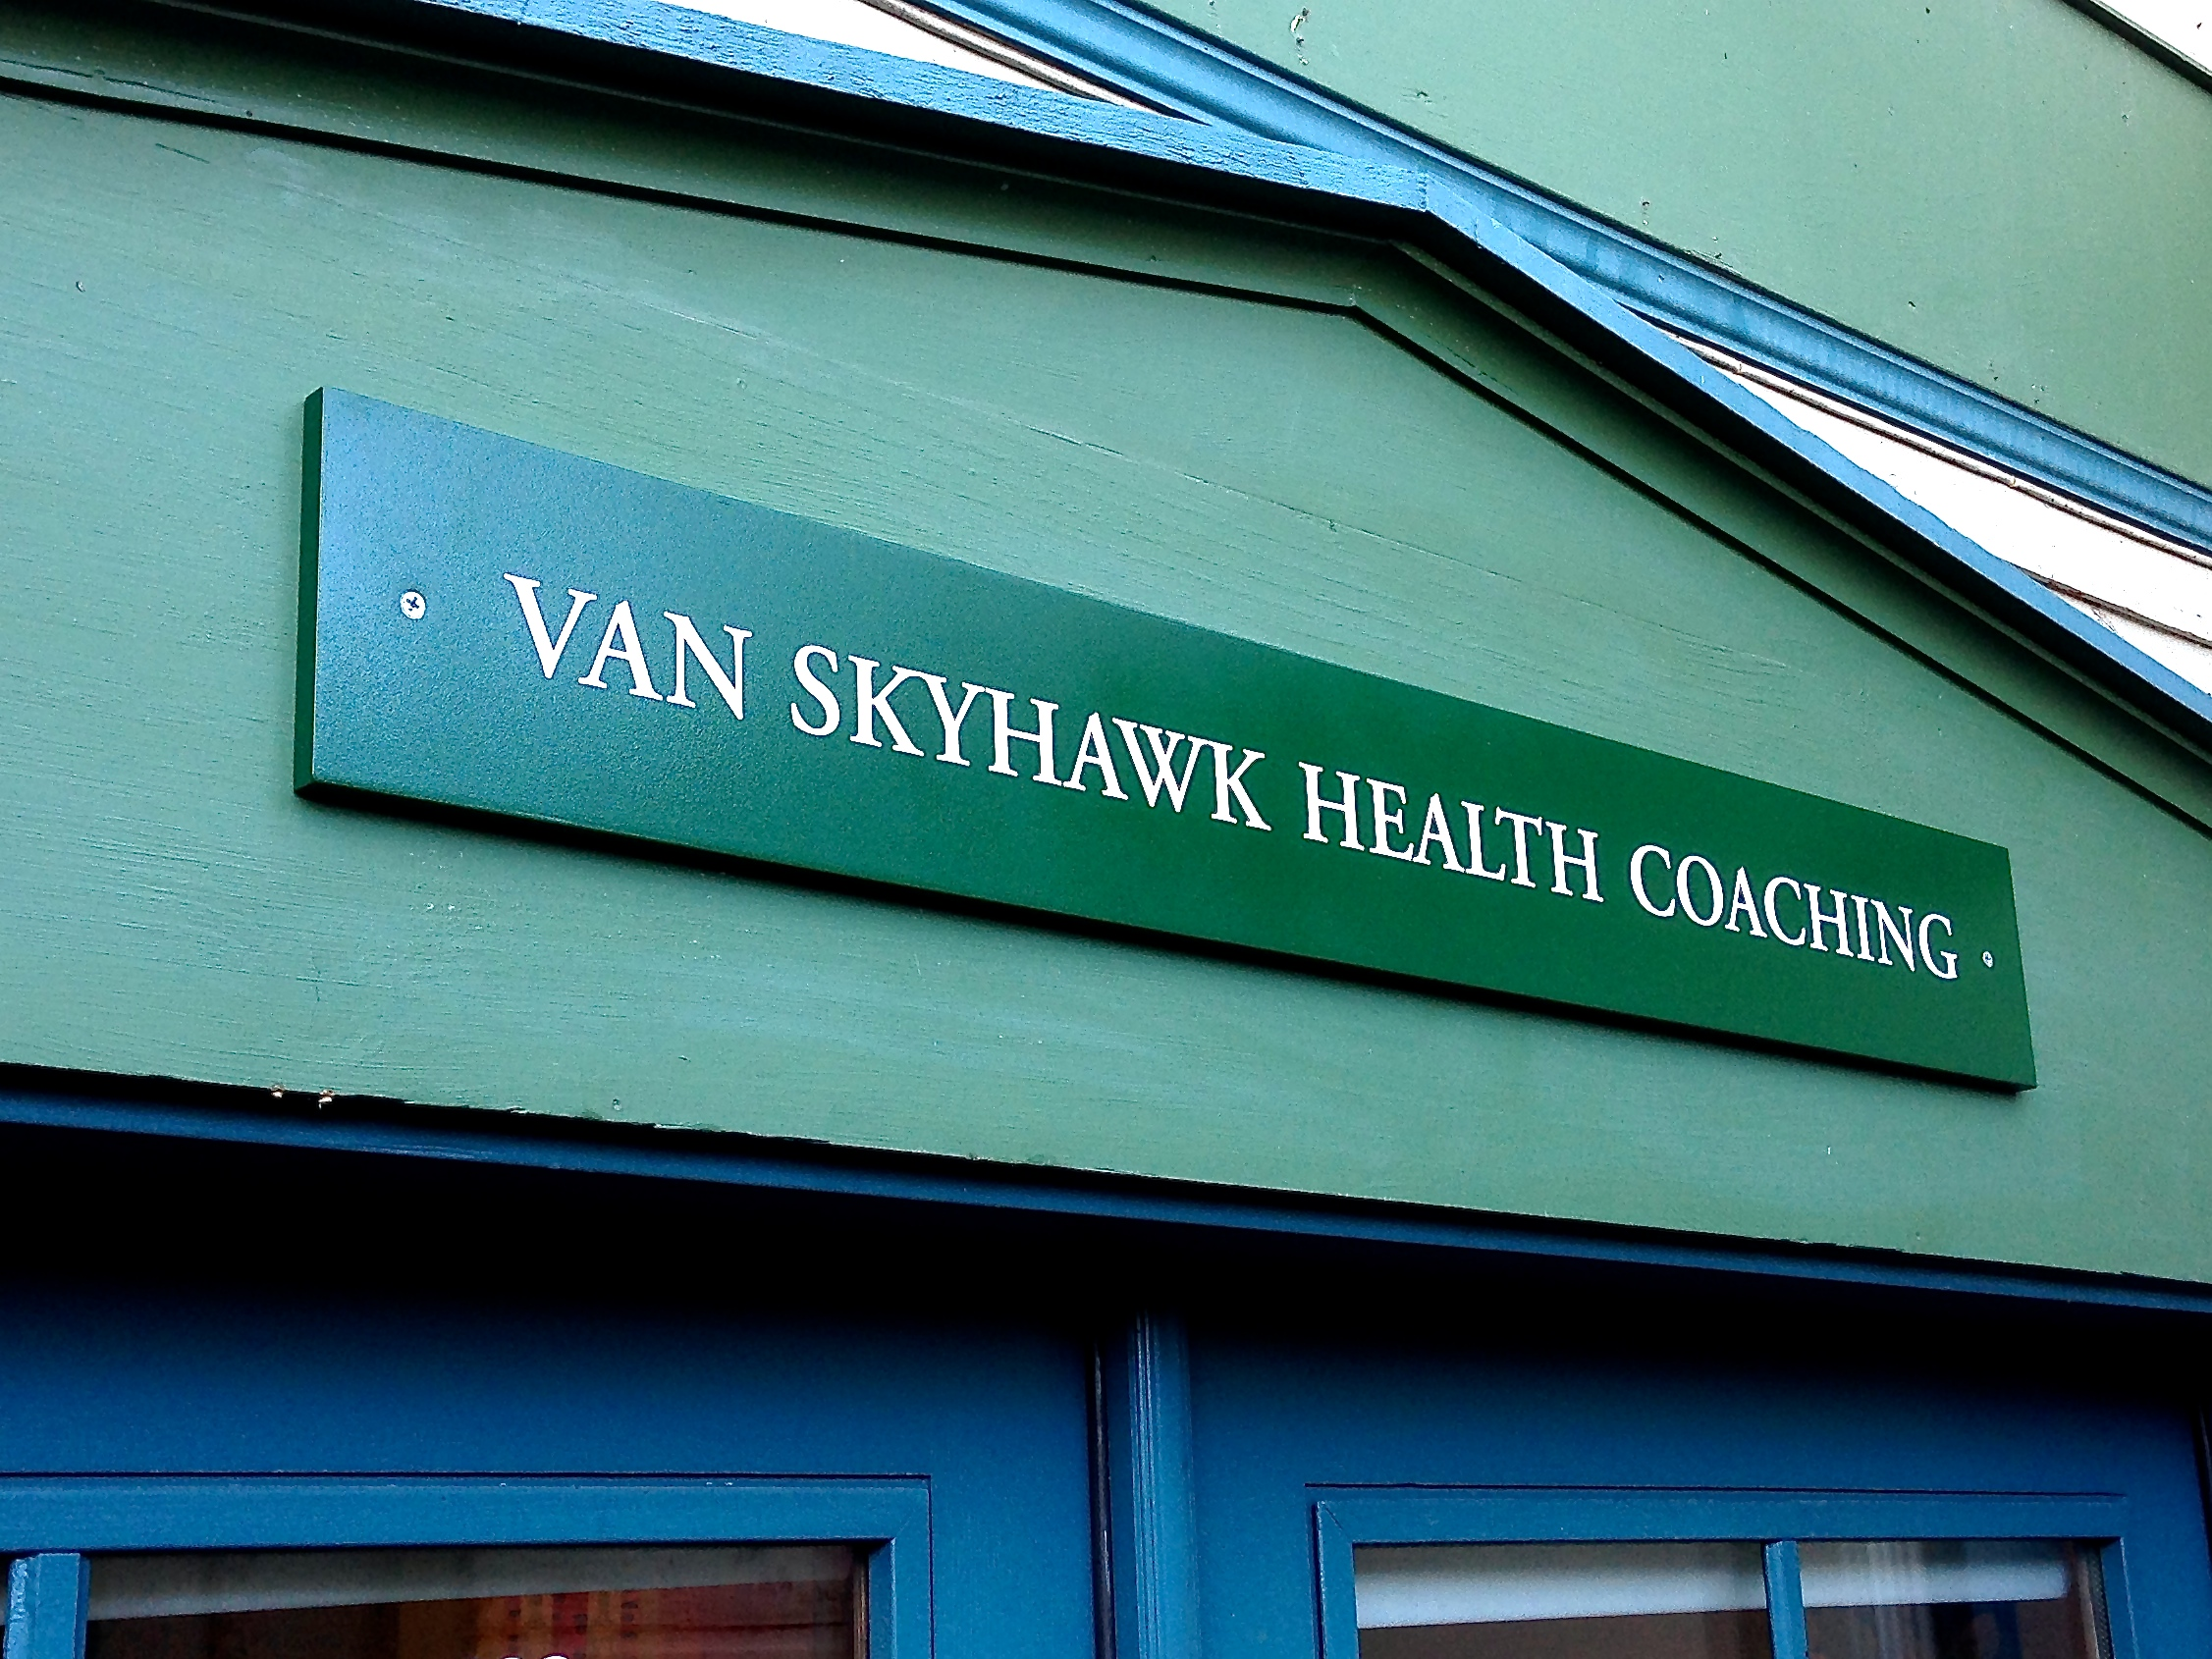 Van Skyhawk Health Coaching